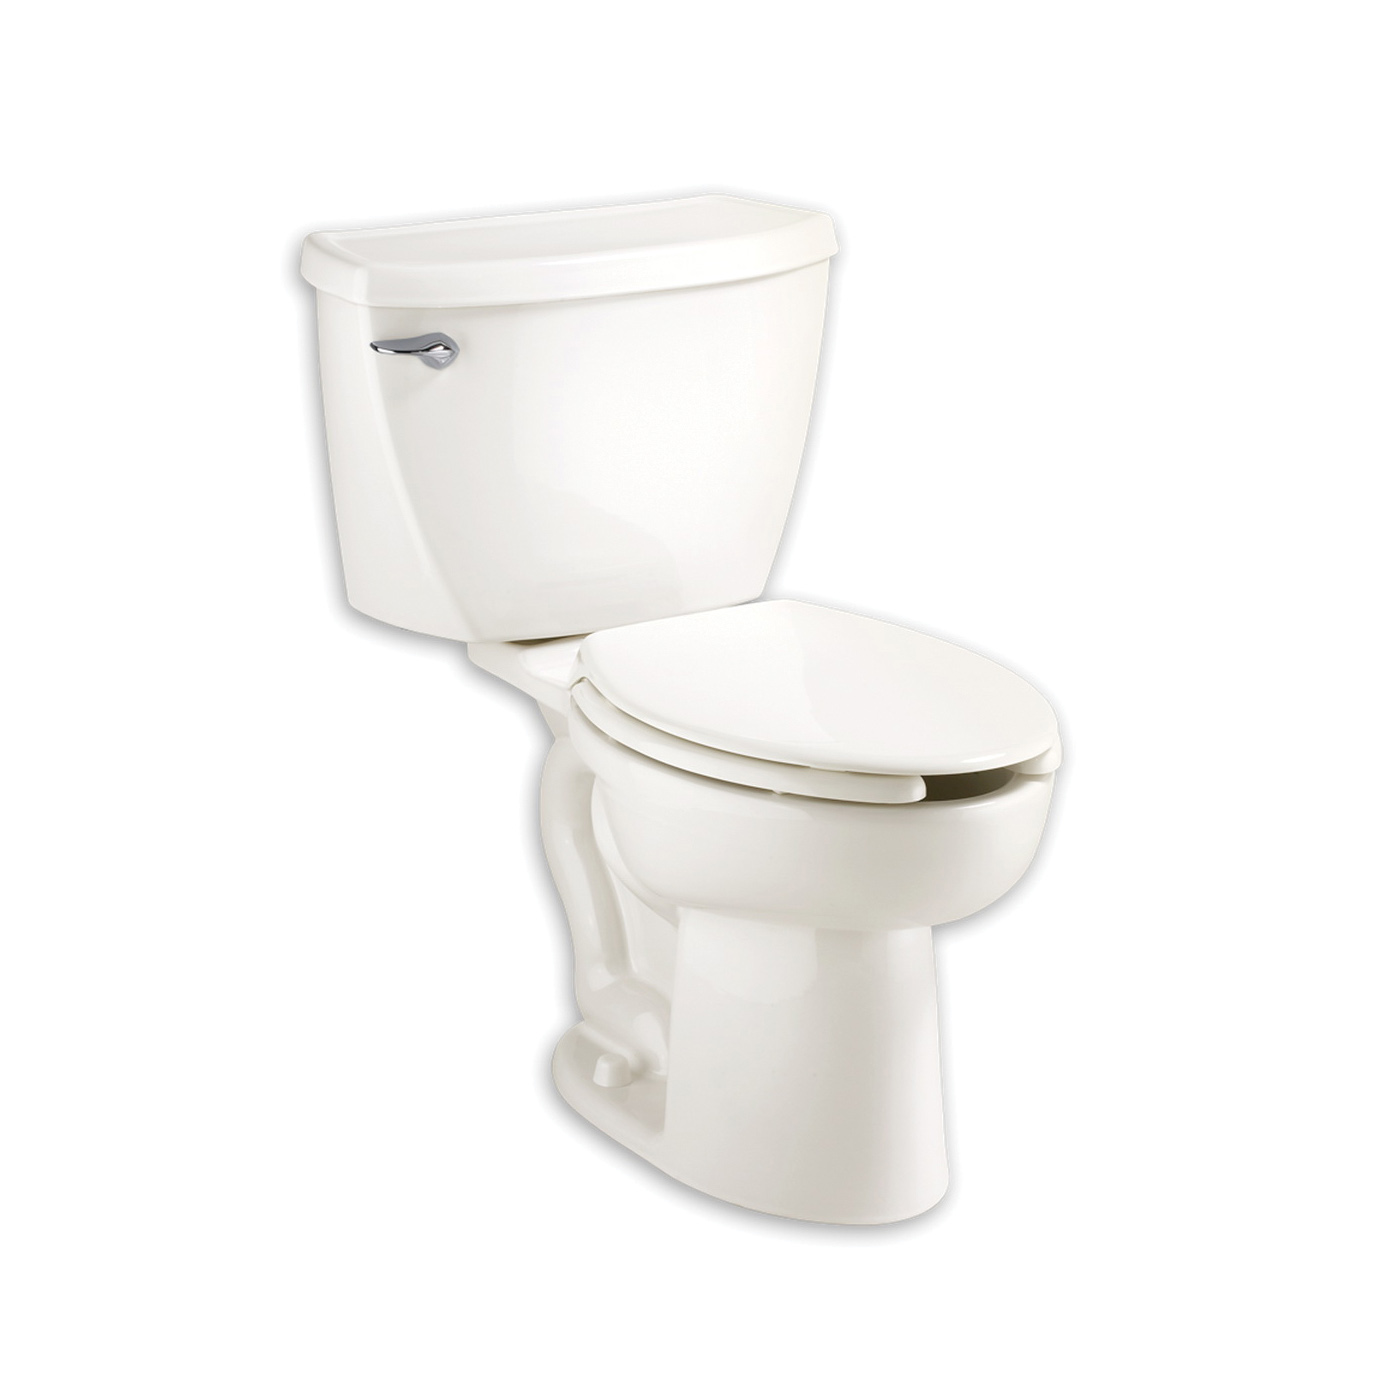 American Standard 2467.100.020 Cadet® Flowise® Right Height™ 2-Piece Toilet, Elongated Bowl, 16-1/2 in H Rim, 12 in Rough-In, 1.1 gpf Flush Rate, White, Domestic